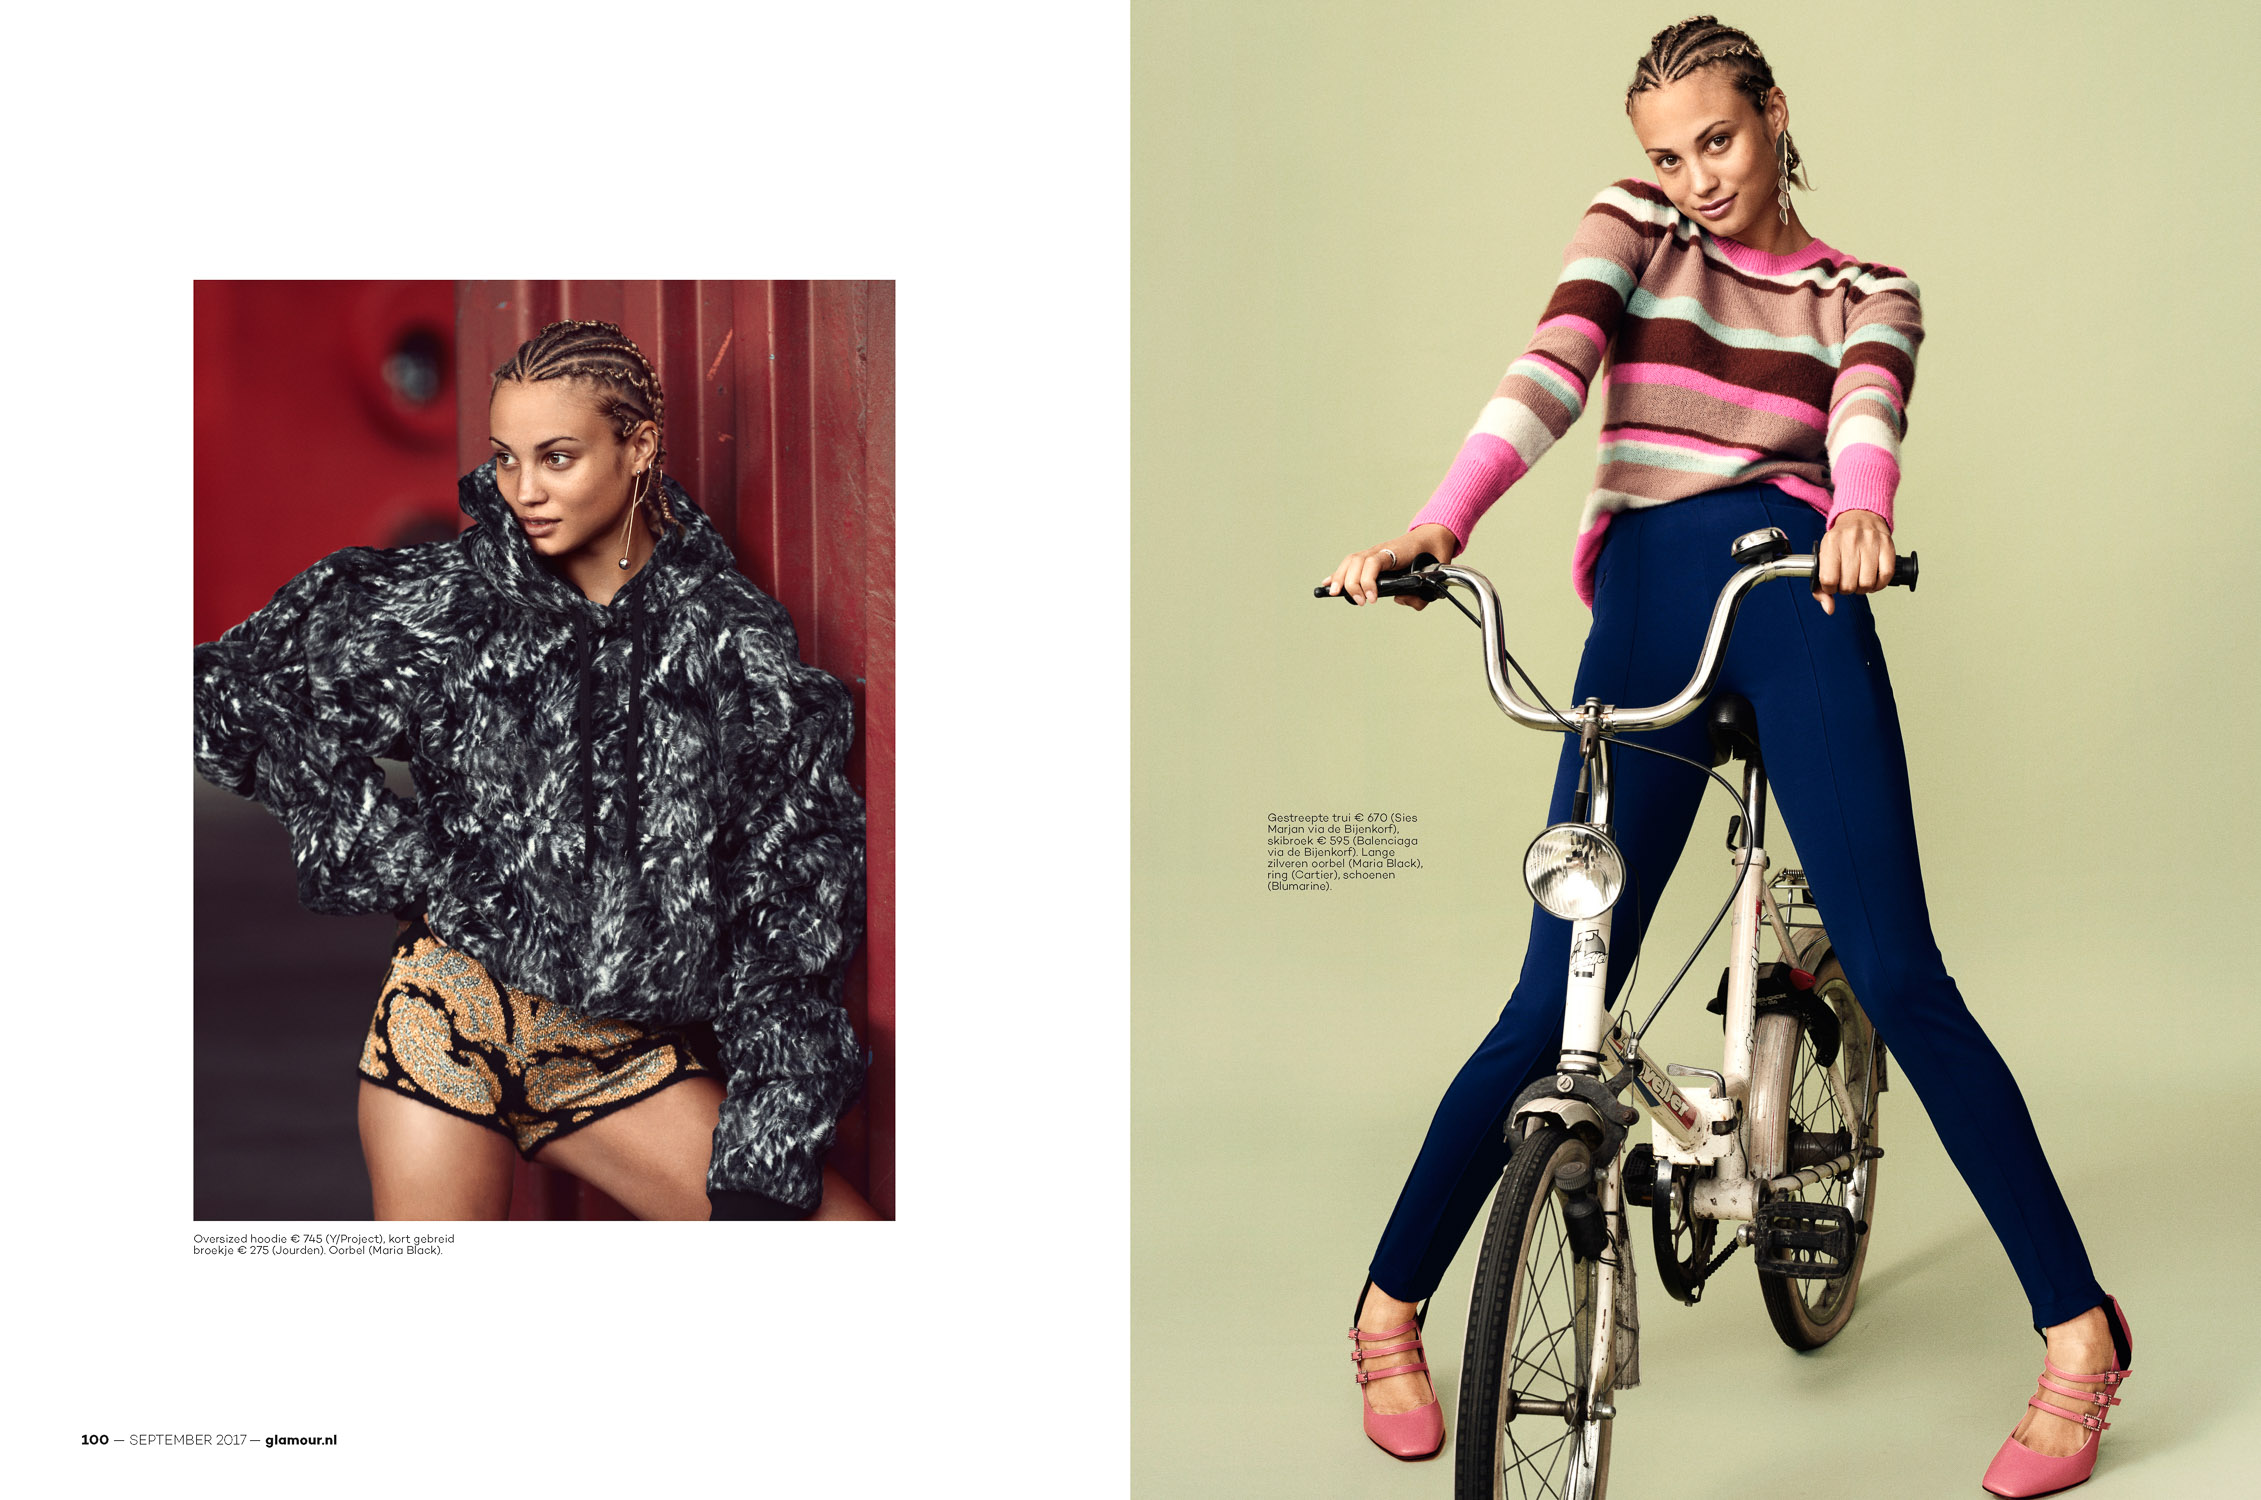 Rose Bertram for Glamour NL by Marc de Groot